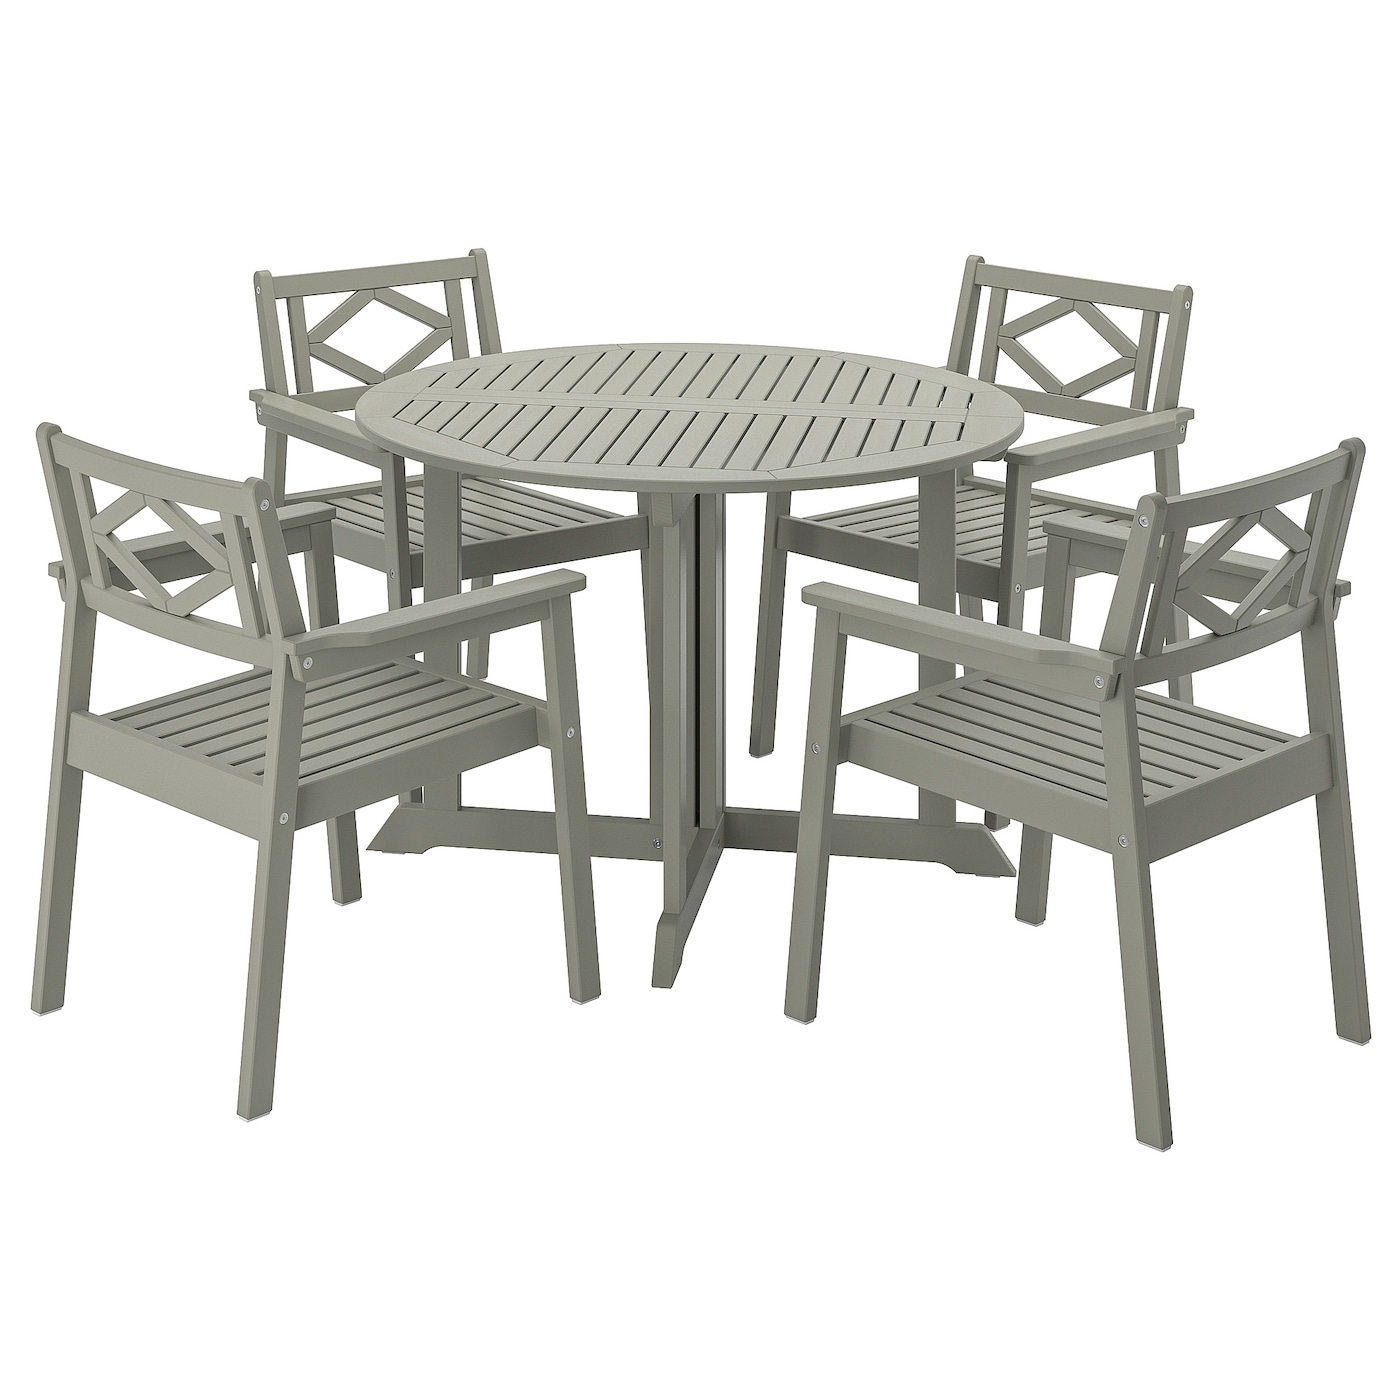 BONDHOLMEN Table and 4 armchairs, outdoor - gray stained